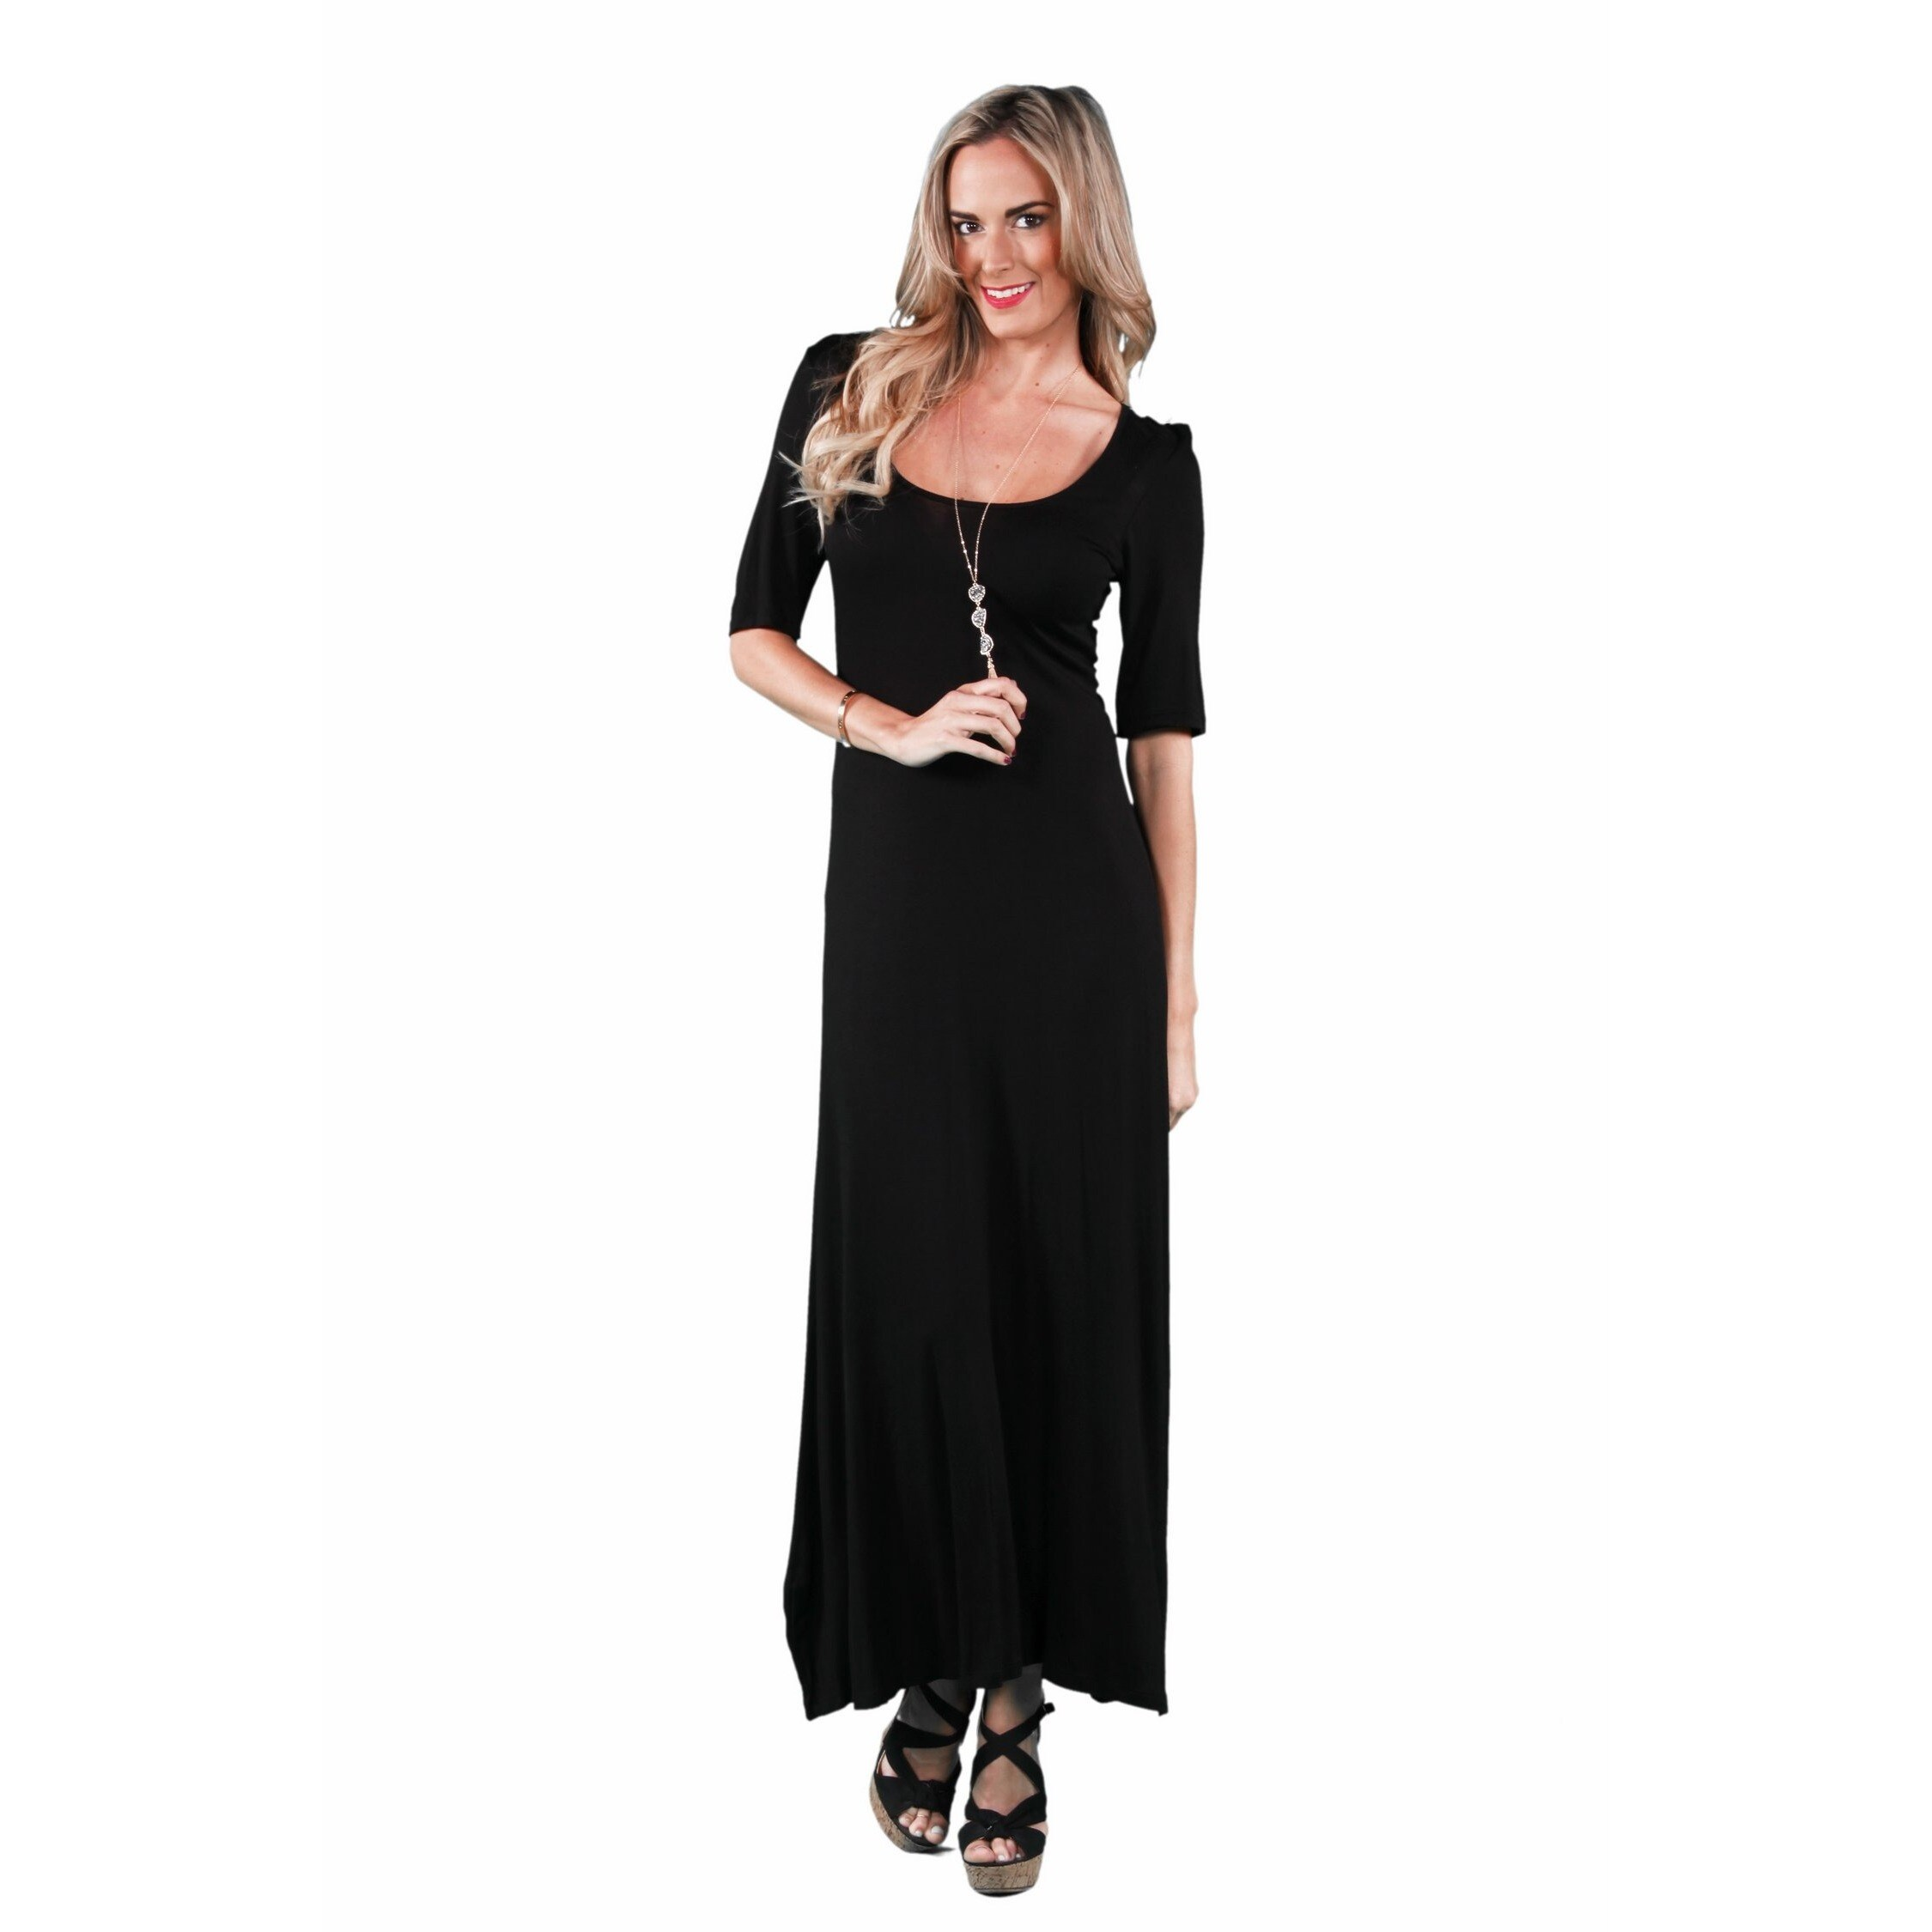 b72aec7172bbd Shop 24/7 Comfort Apparel Women's Elbow Sleeve Maxi Dress - On Sale ...